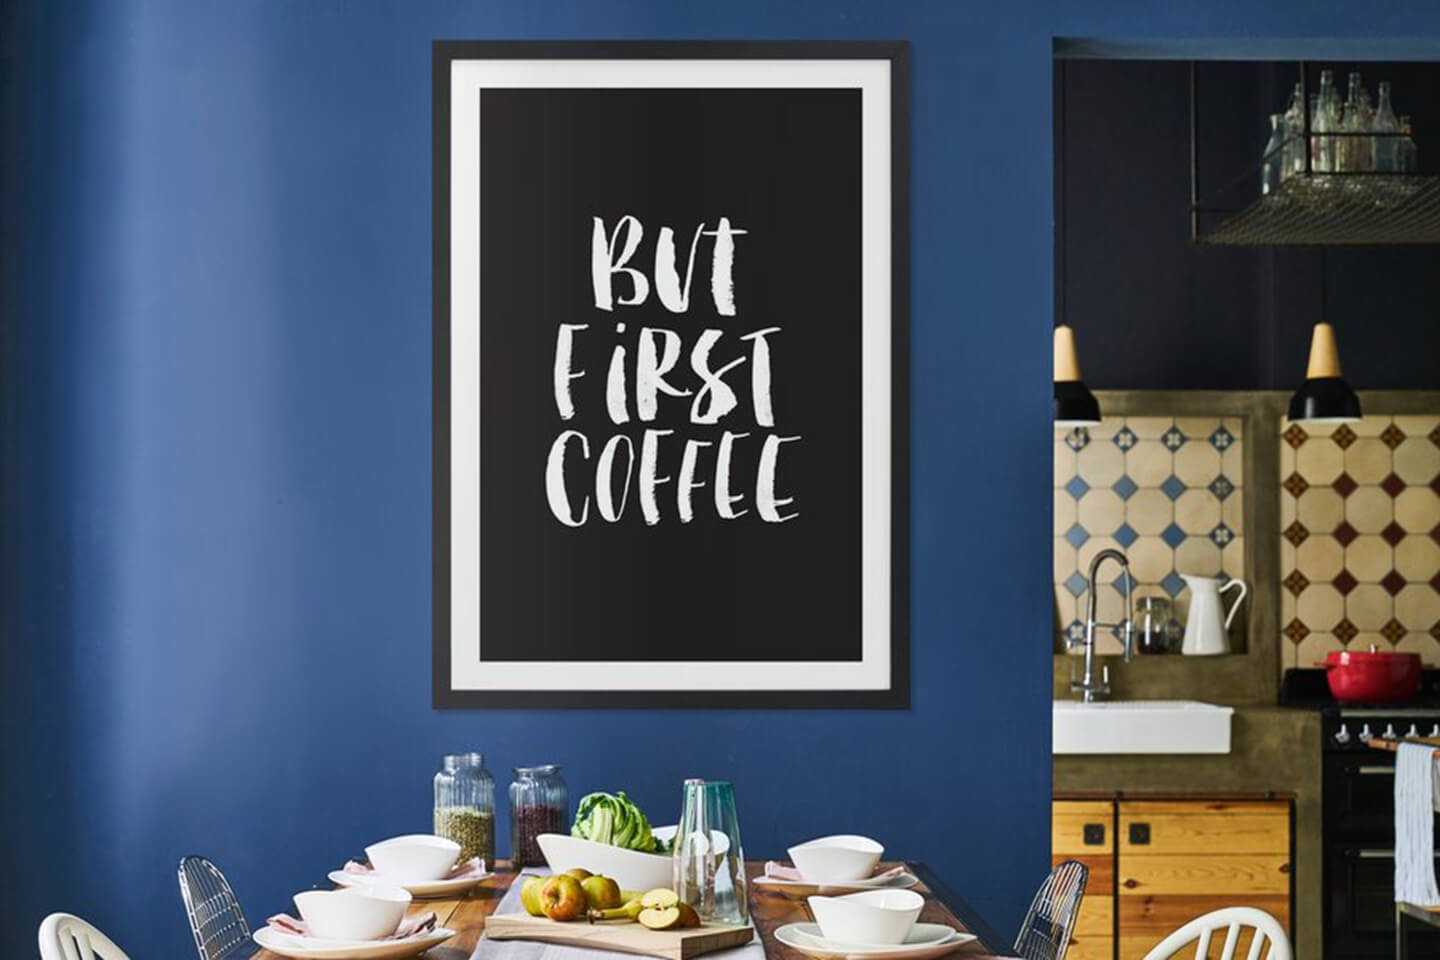 coffee-first-gifts-for-coffee-addicts-05@1x